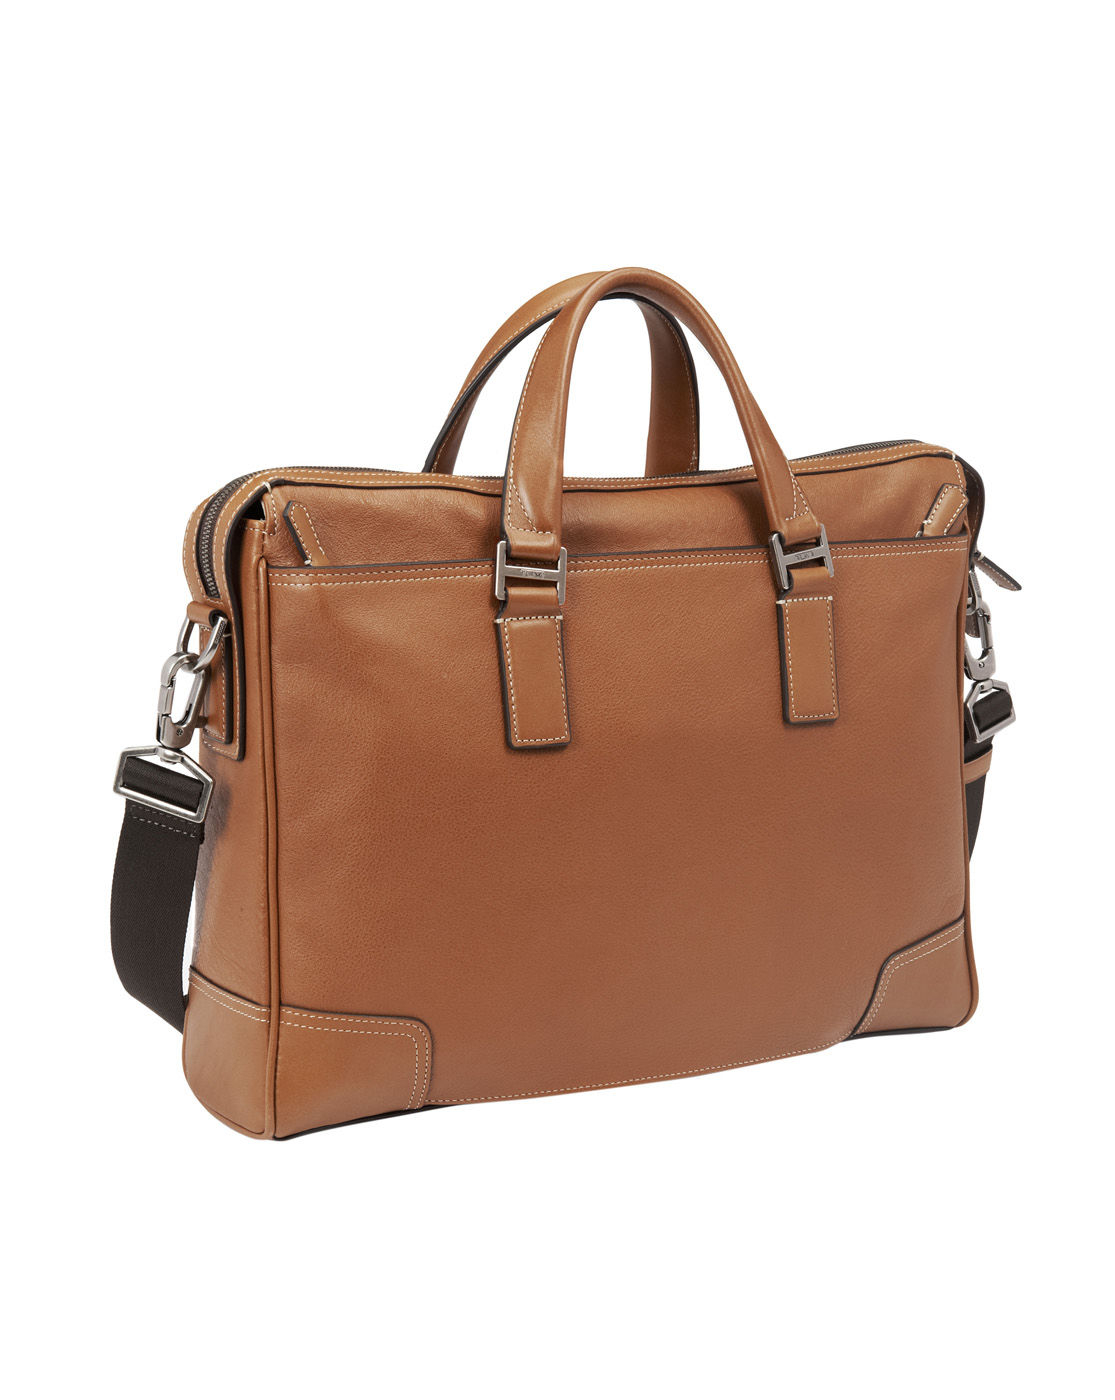 tumi leather briefcase photo - 1